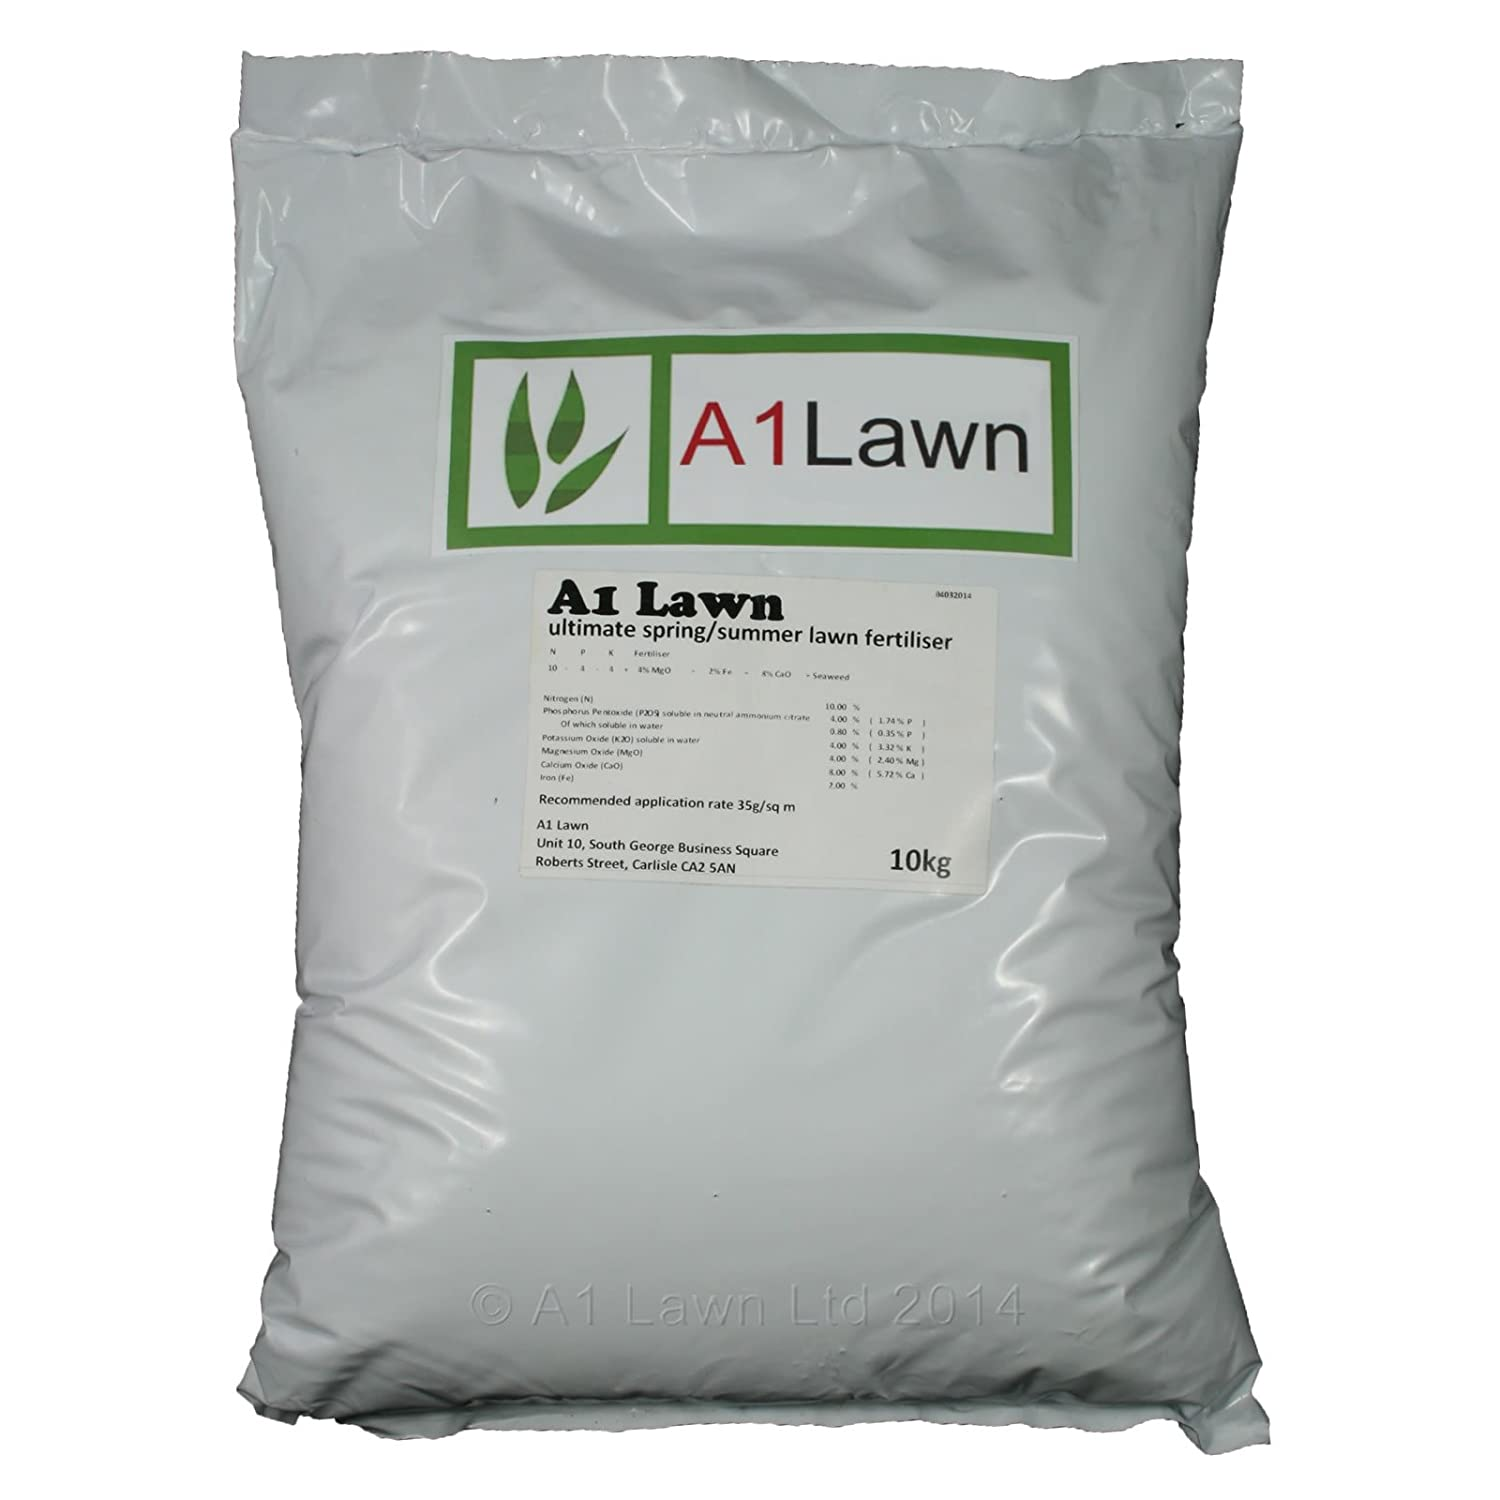 10kg A1LAWN ULTIMATE SPRING/SUMMER LAWN FERTILISER (10-8-4+4MgO+2Fe+8CaO+Seaweed) - 285 Sq Metres